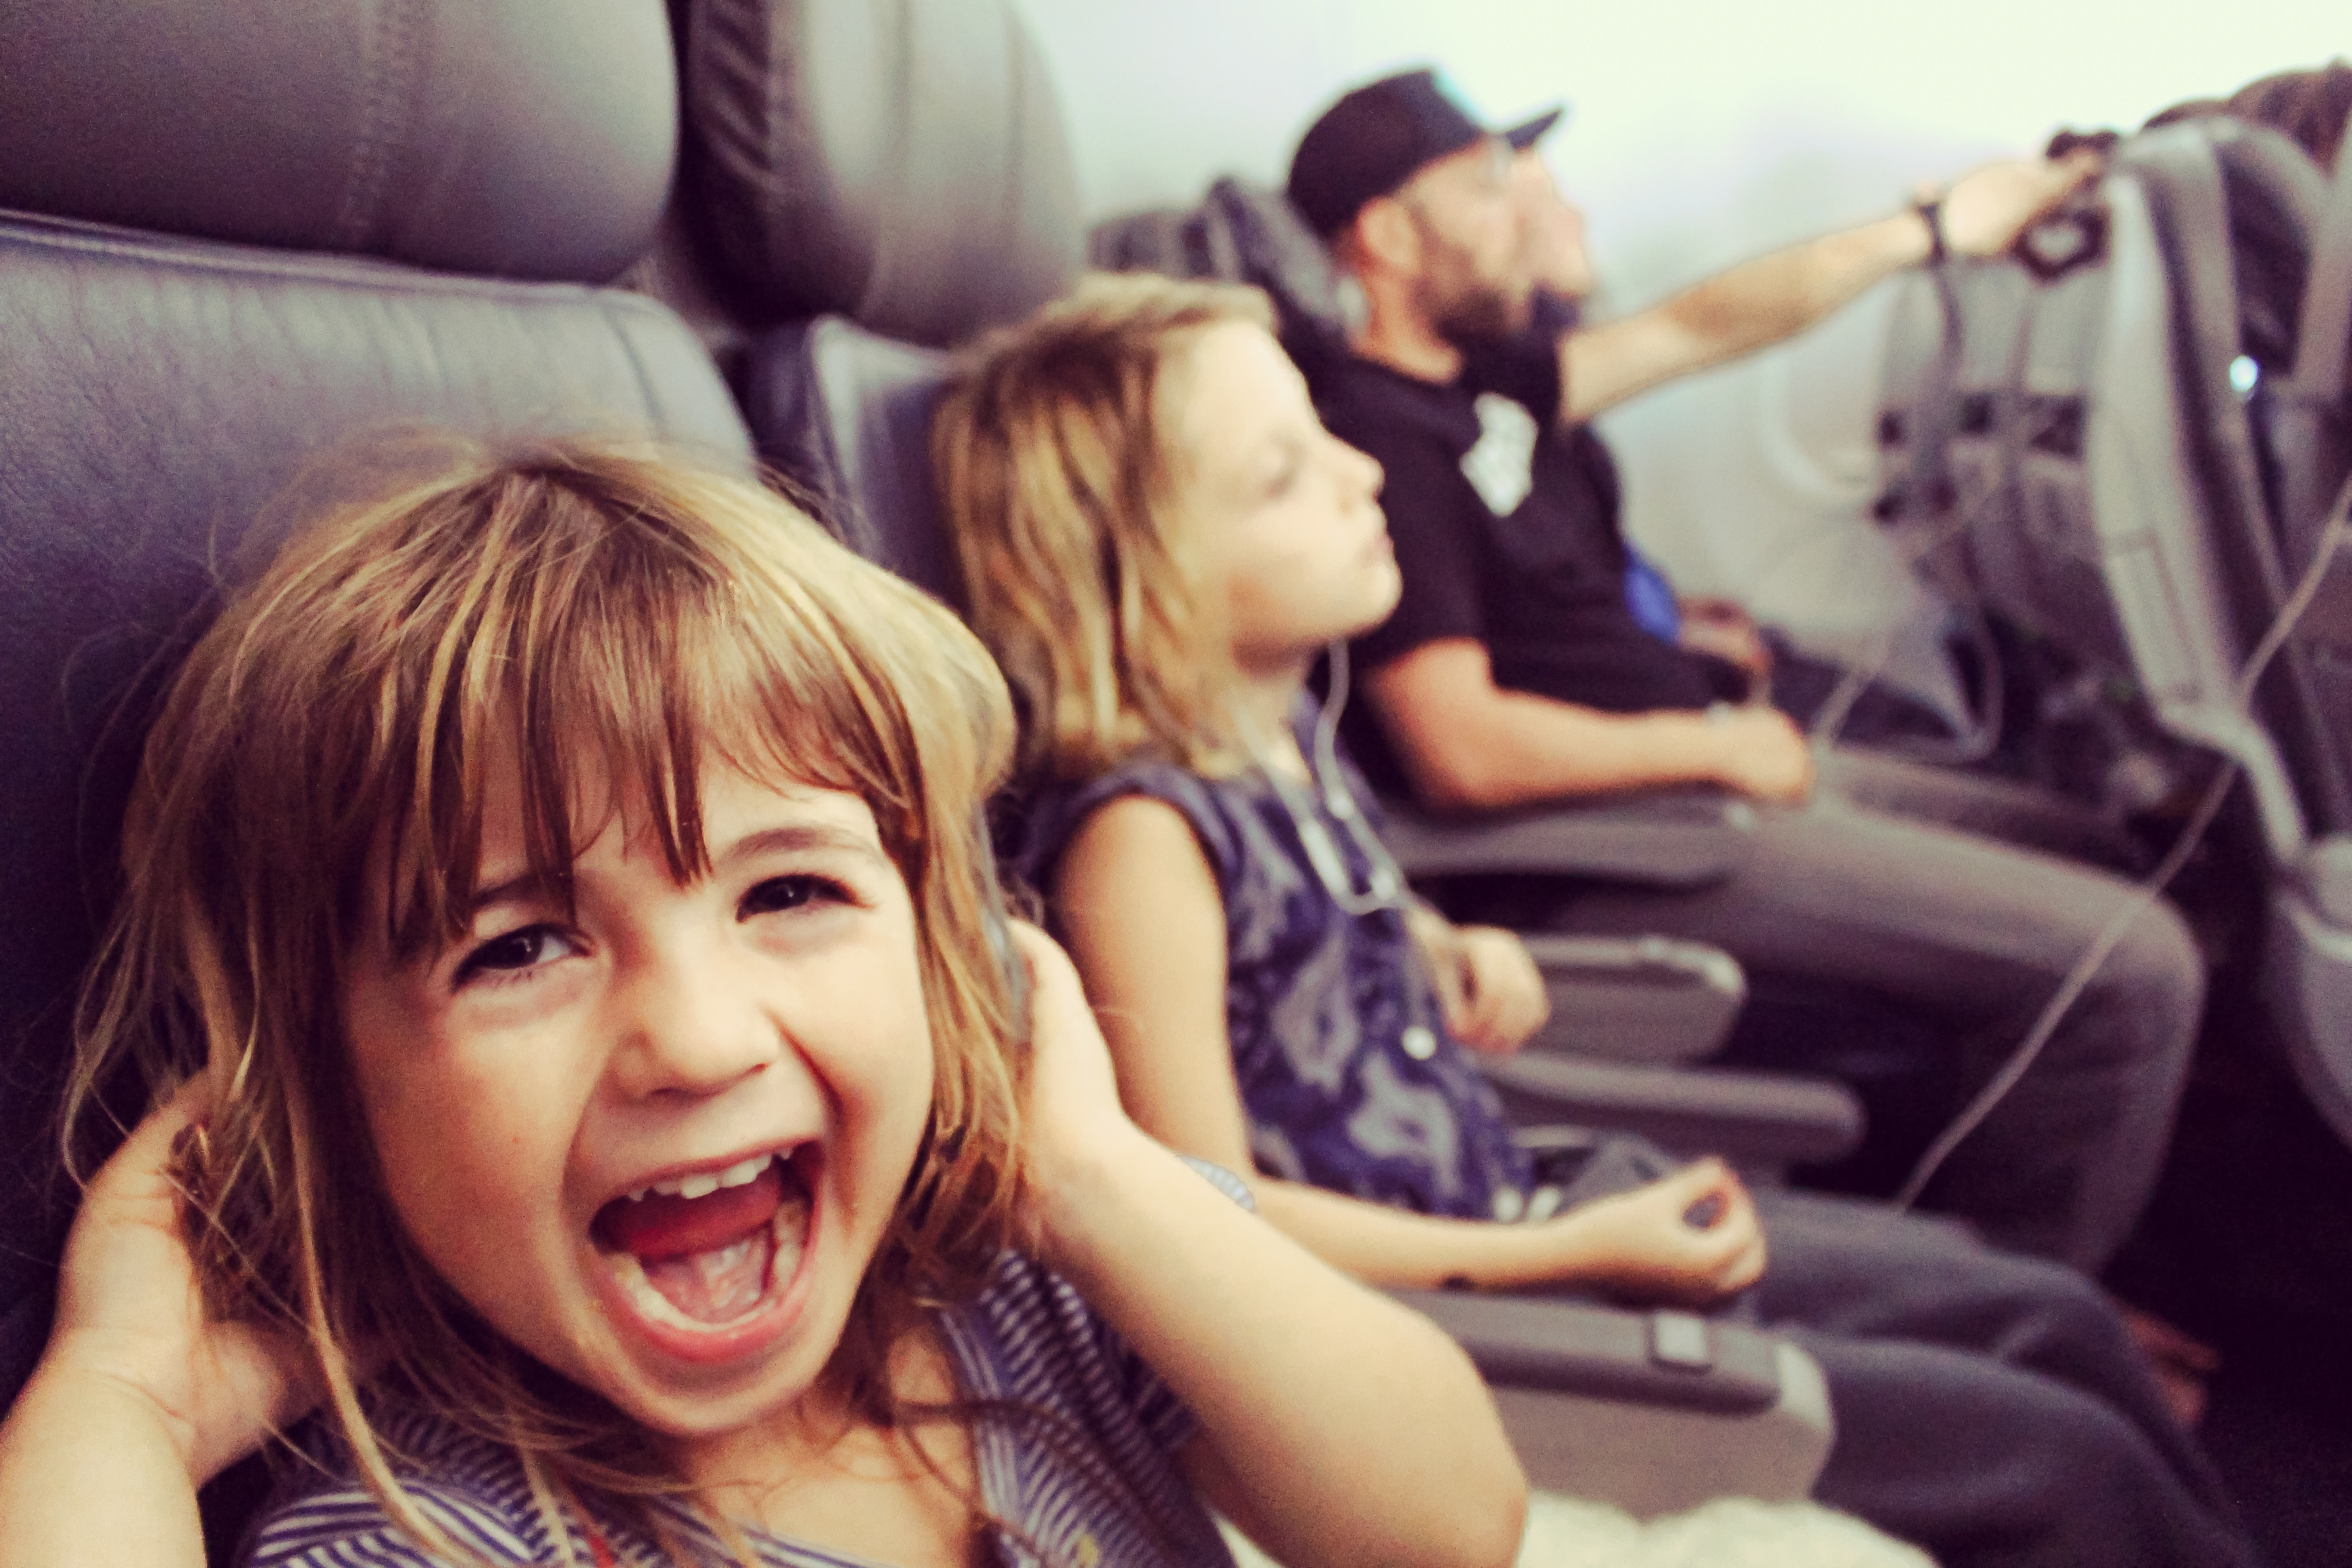 kids on a plane excited to go on holiday